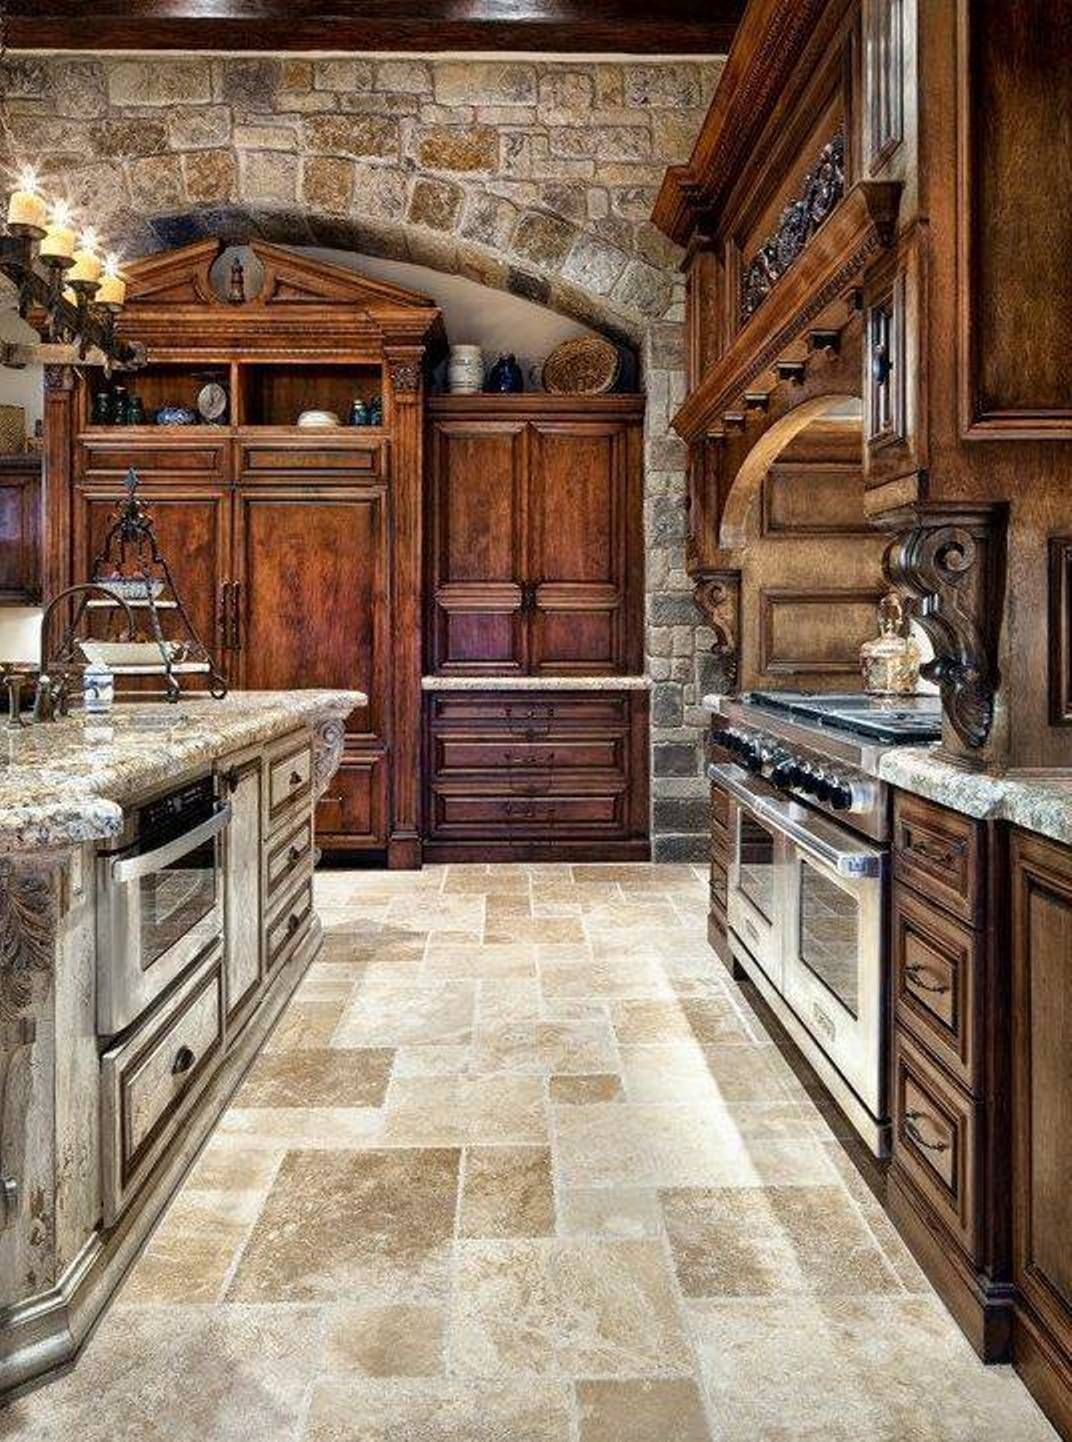 Tuscan Kitchen Decor Themes old world looking kitchens | old world tuscan themed kitchen style